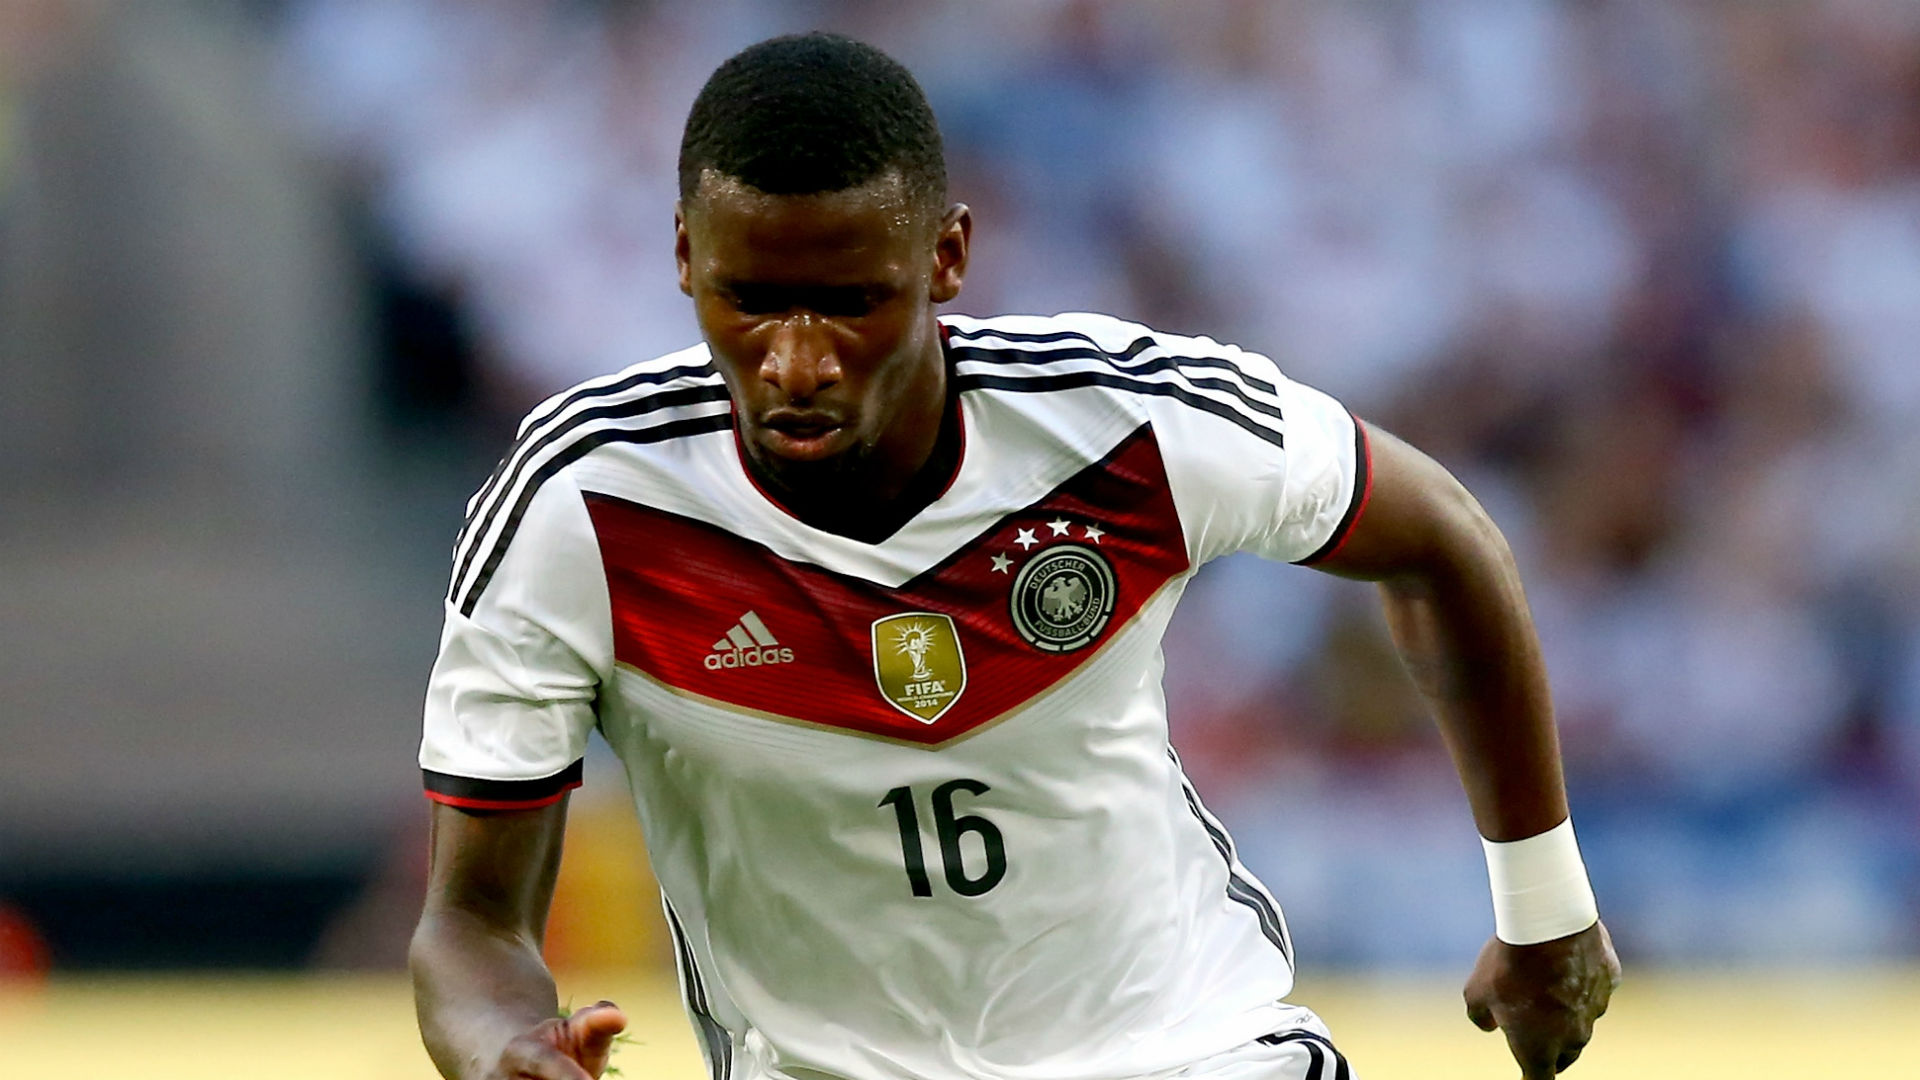 Roma complete Rudiger signing from Stuttgart